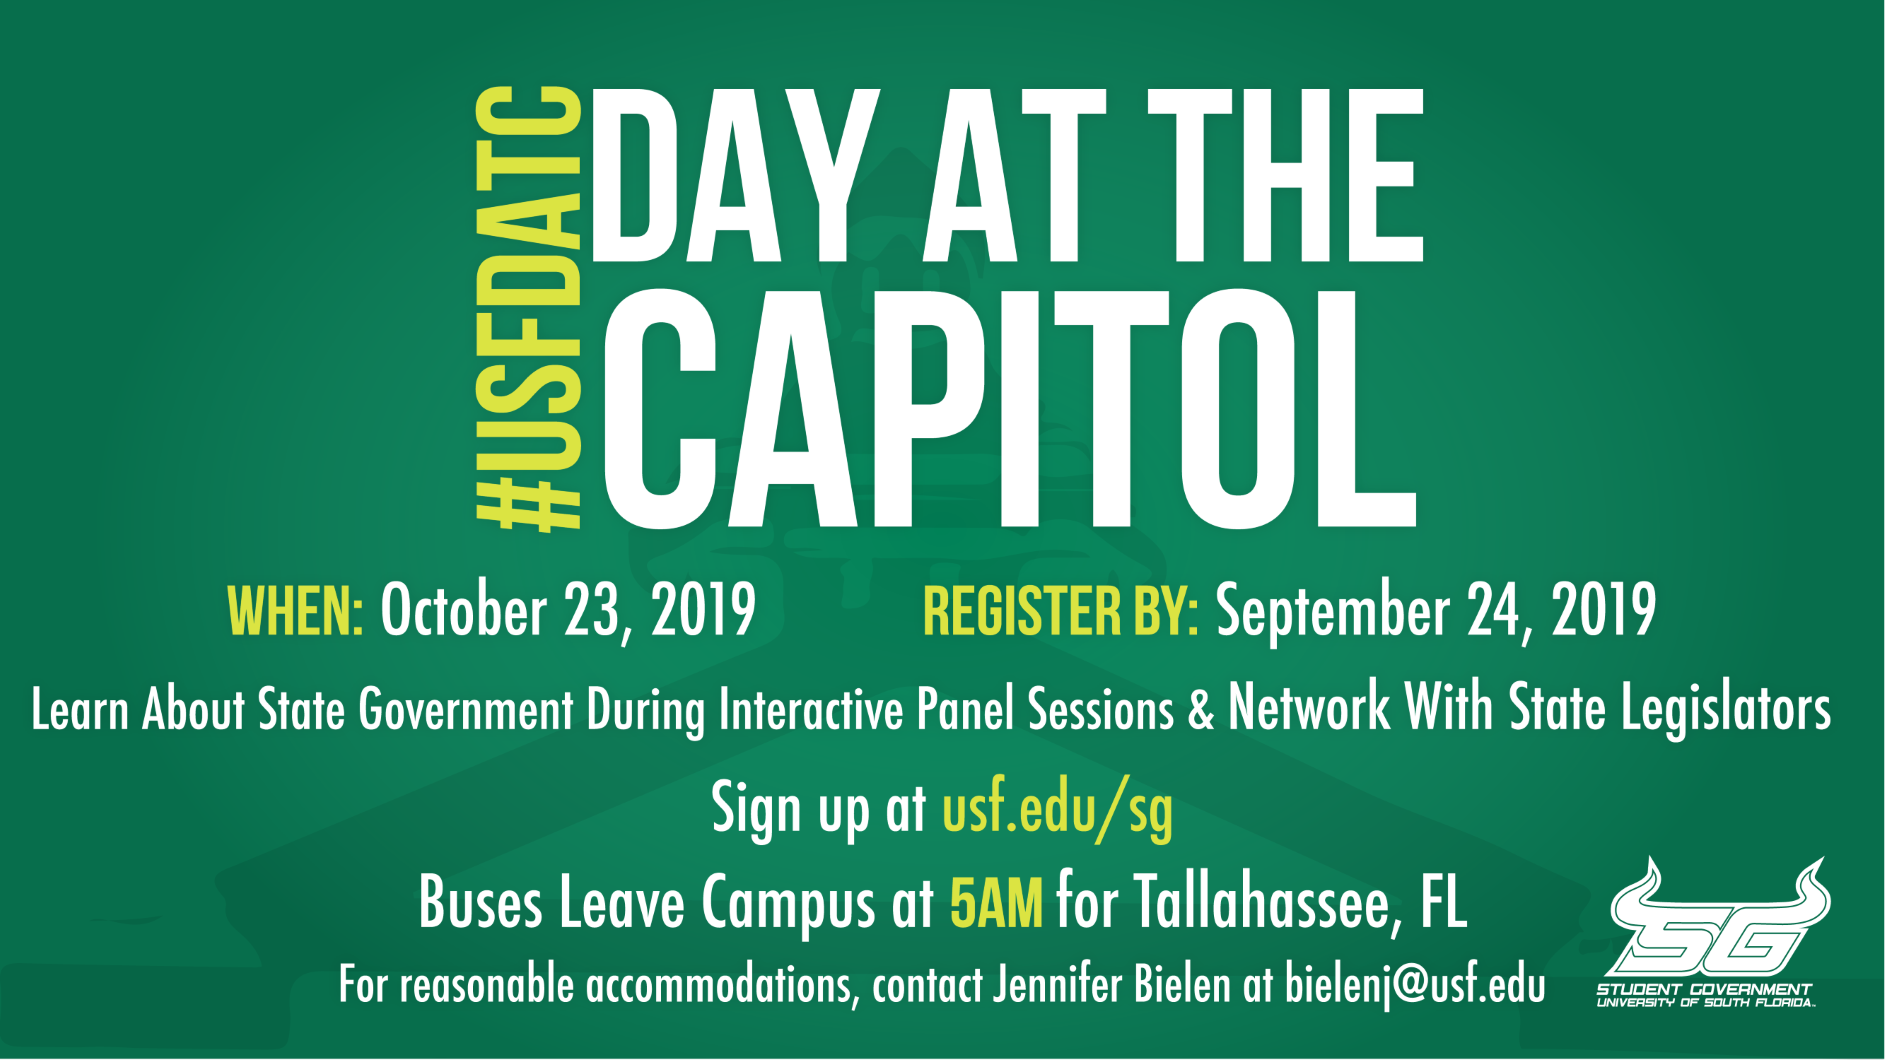 Day at the Capitol Registration Information